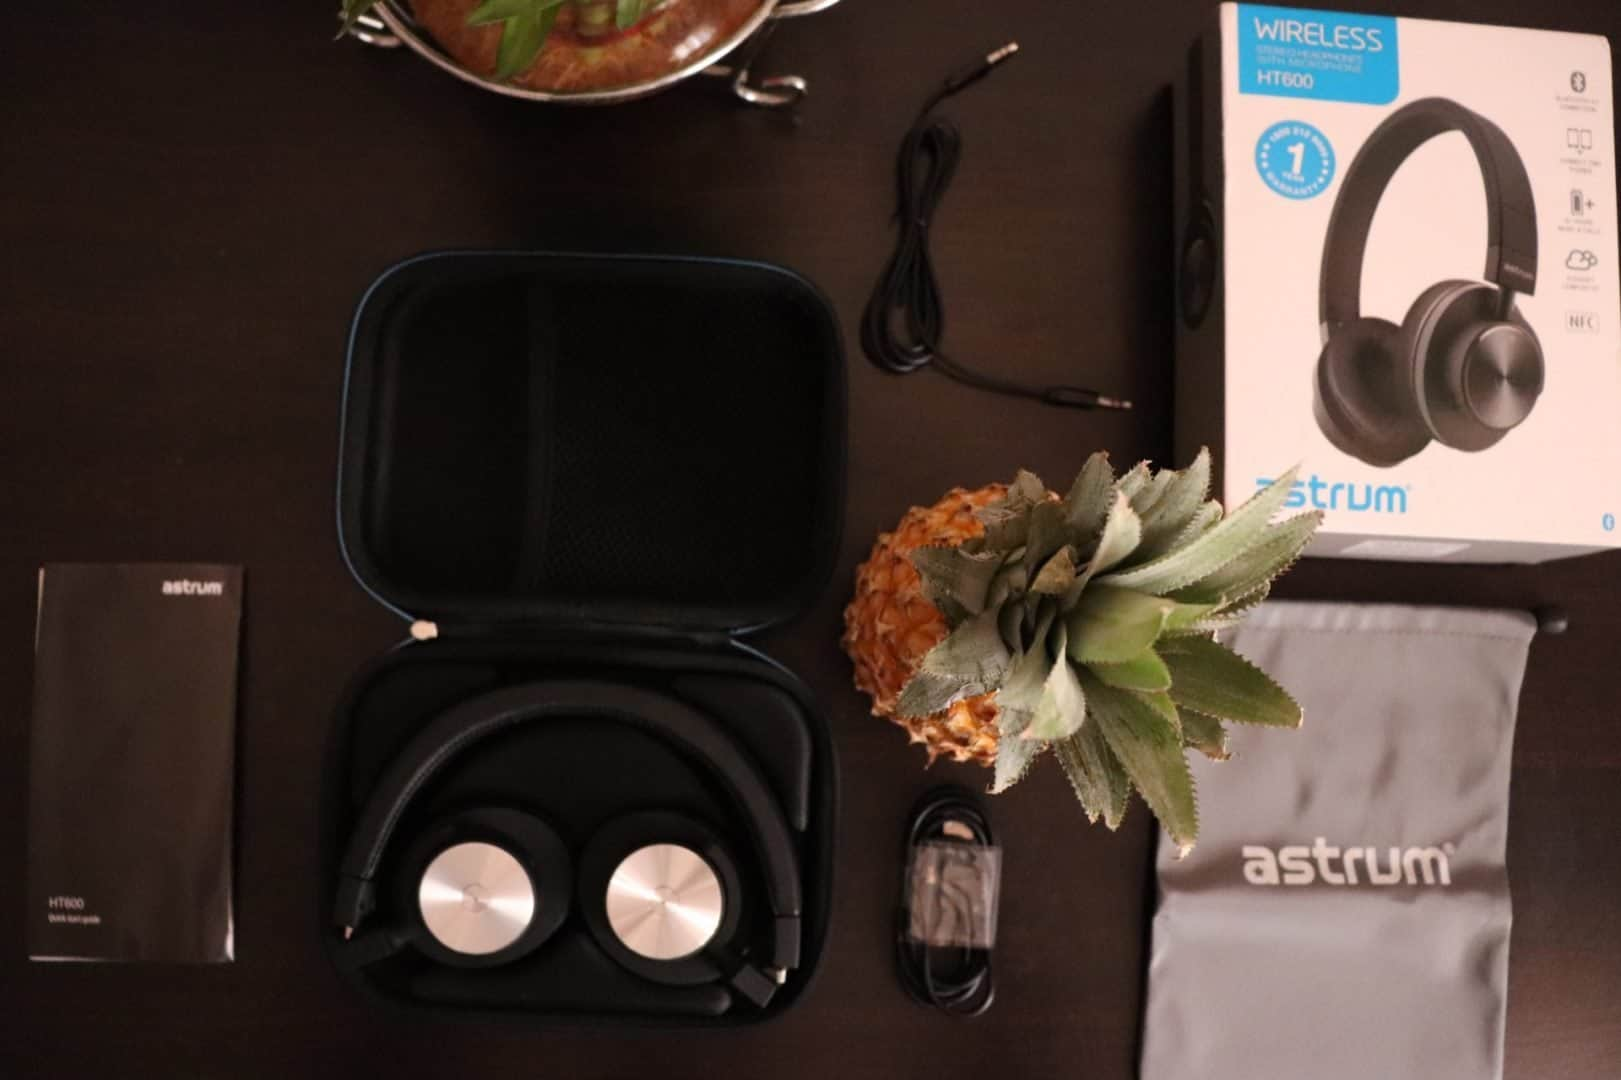 Astrum HT600 Wireless Stereo Headphones Review - The Minimalistic Headphone which you can carry around! - 2